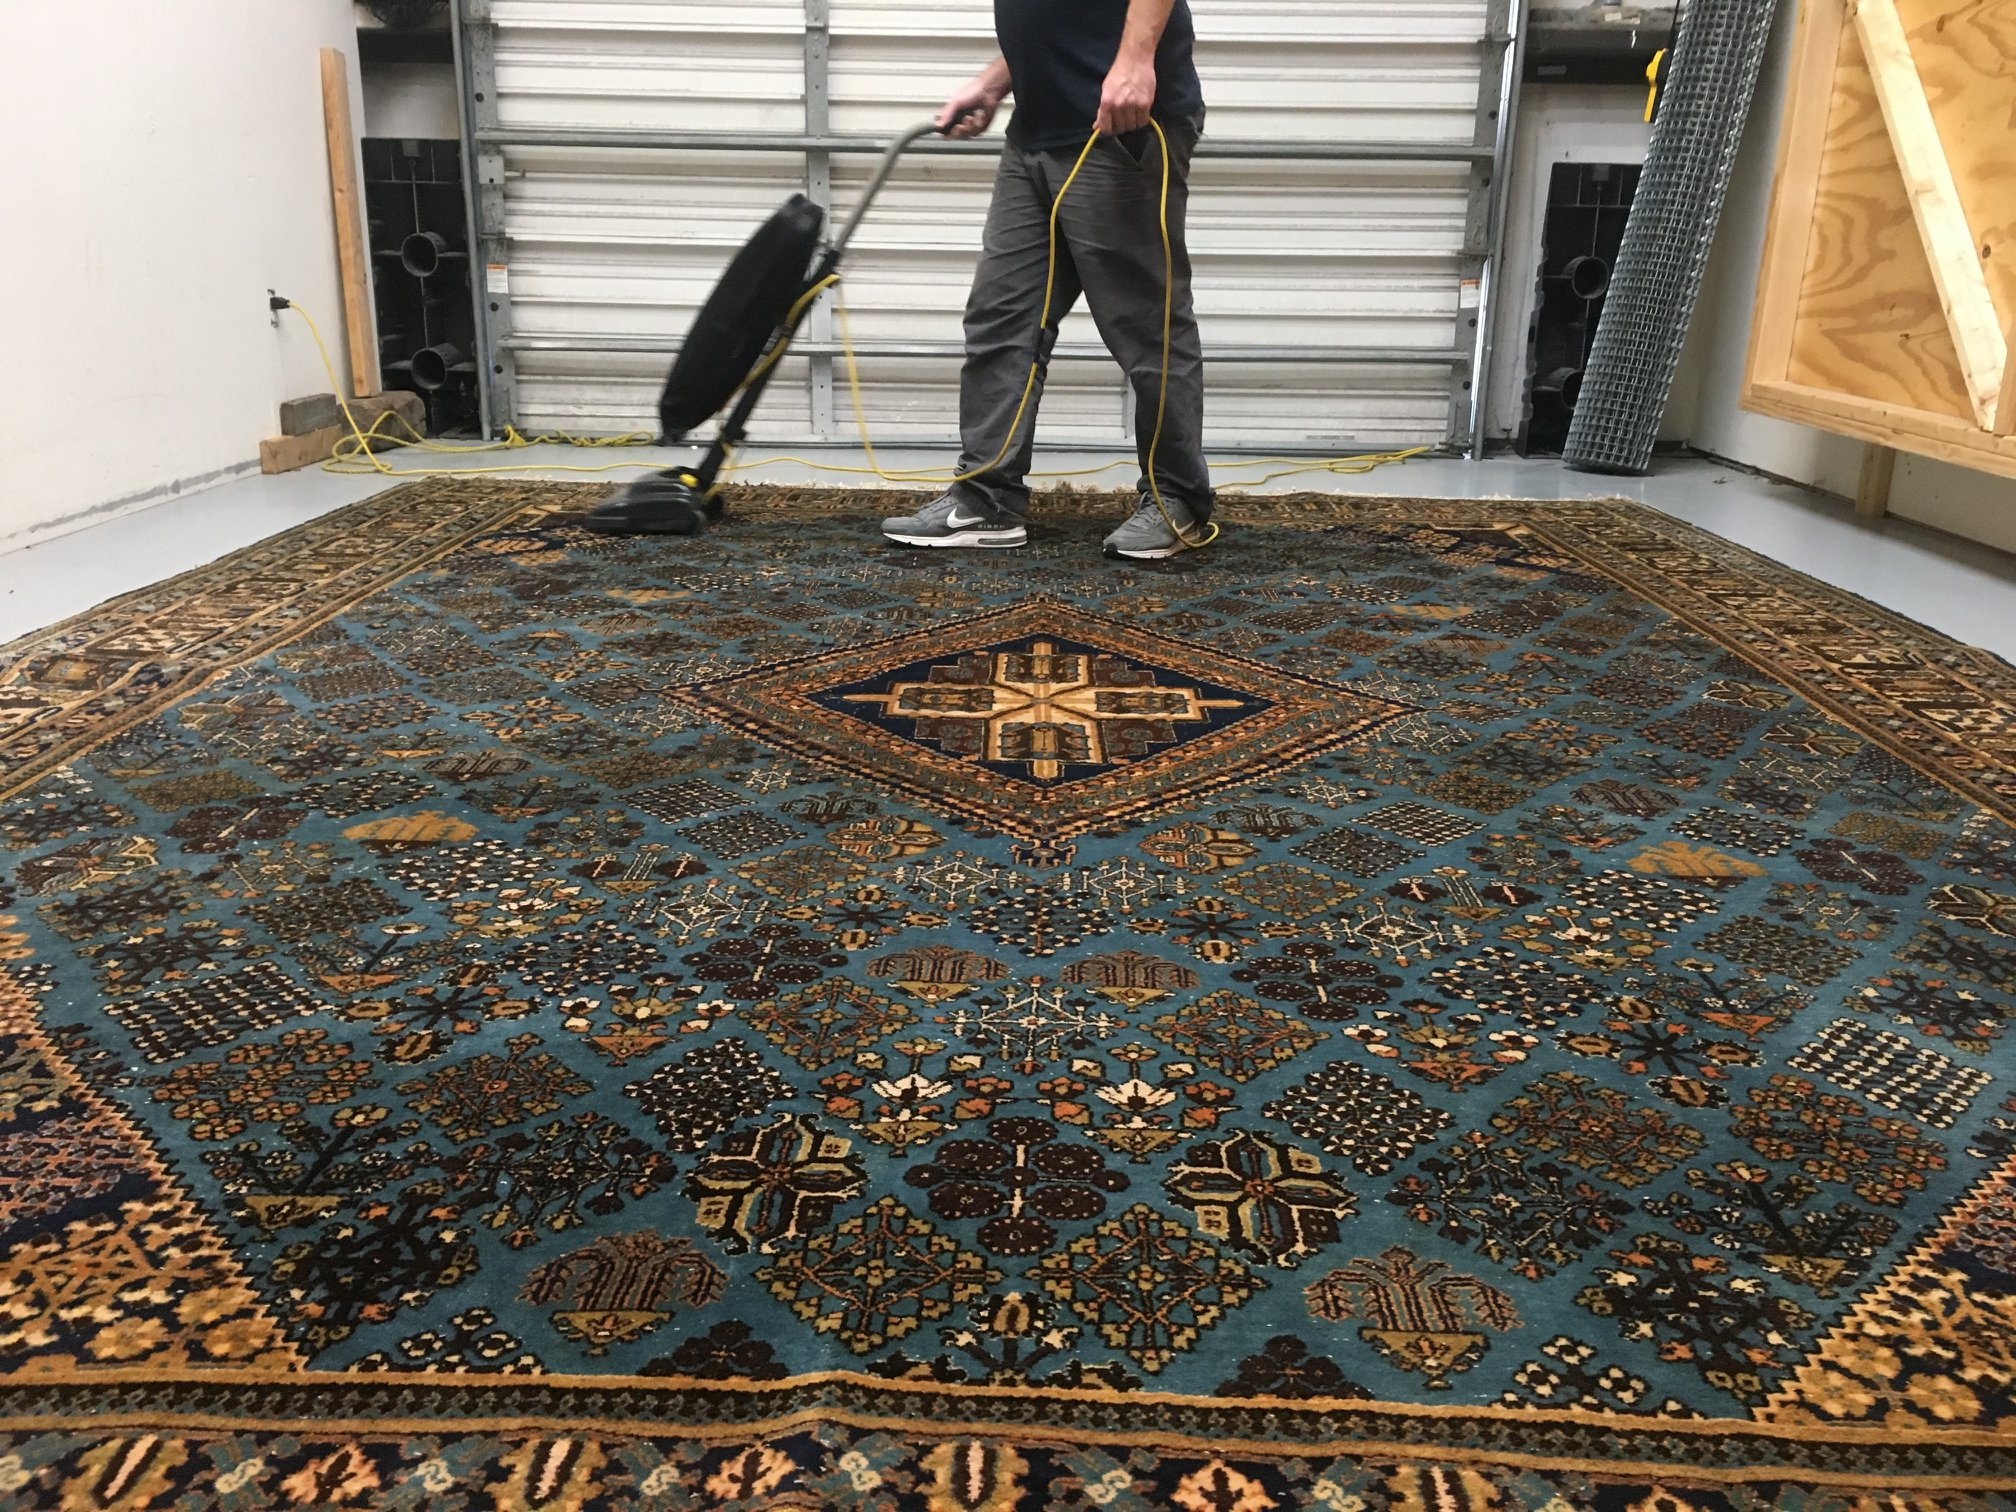 clear water technician commercially vacuuming area rug